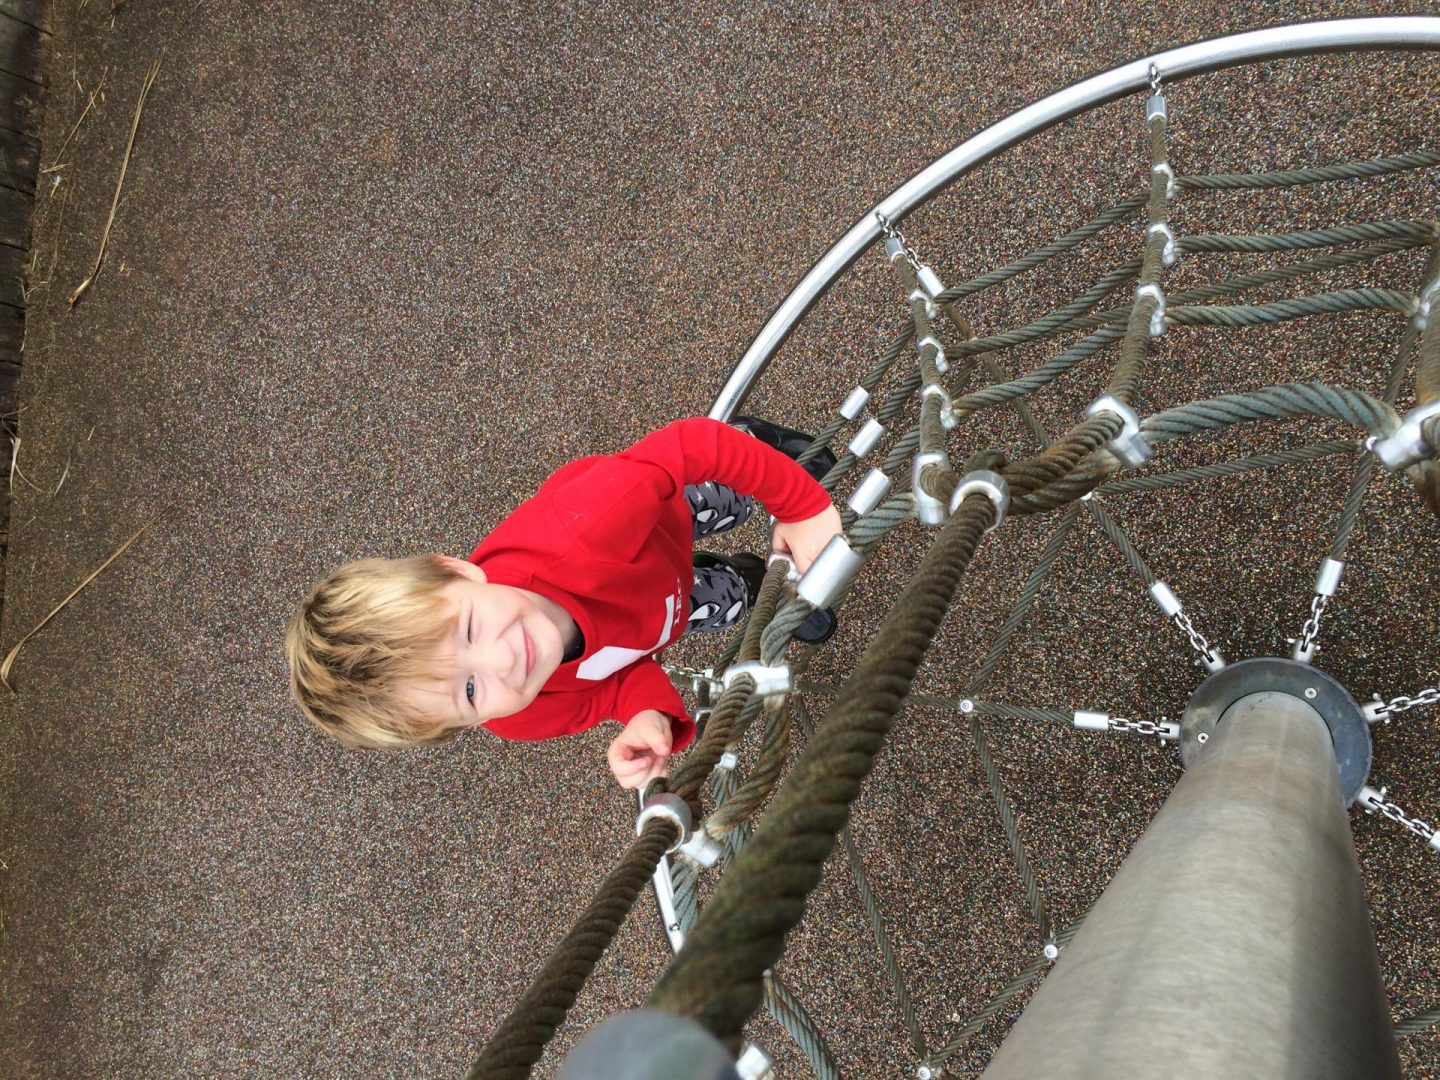 Picture taken from above of a little boy in a red top climbing up a climbing frame